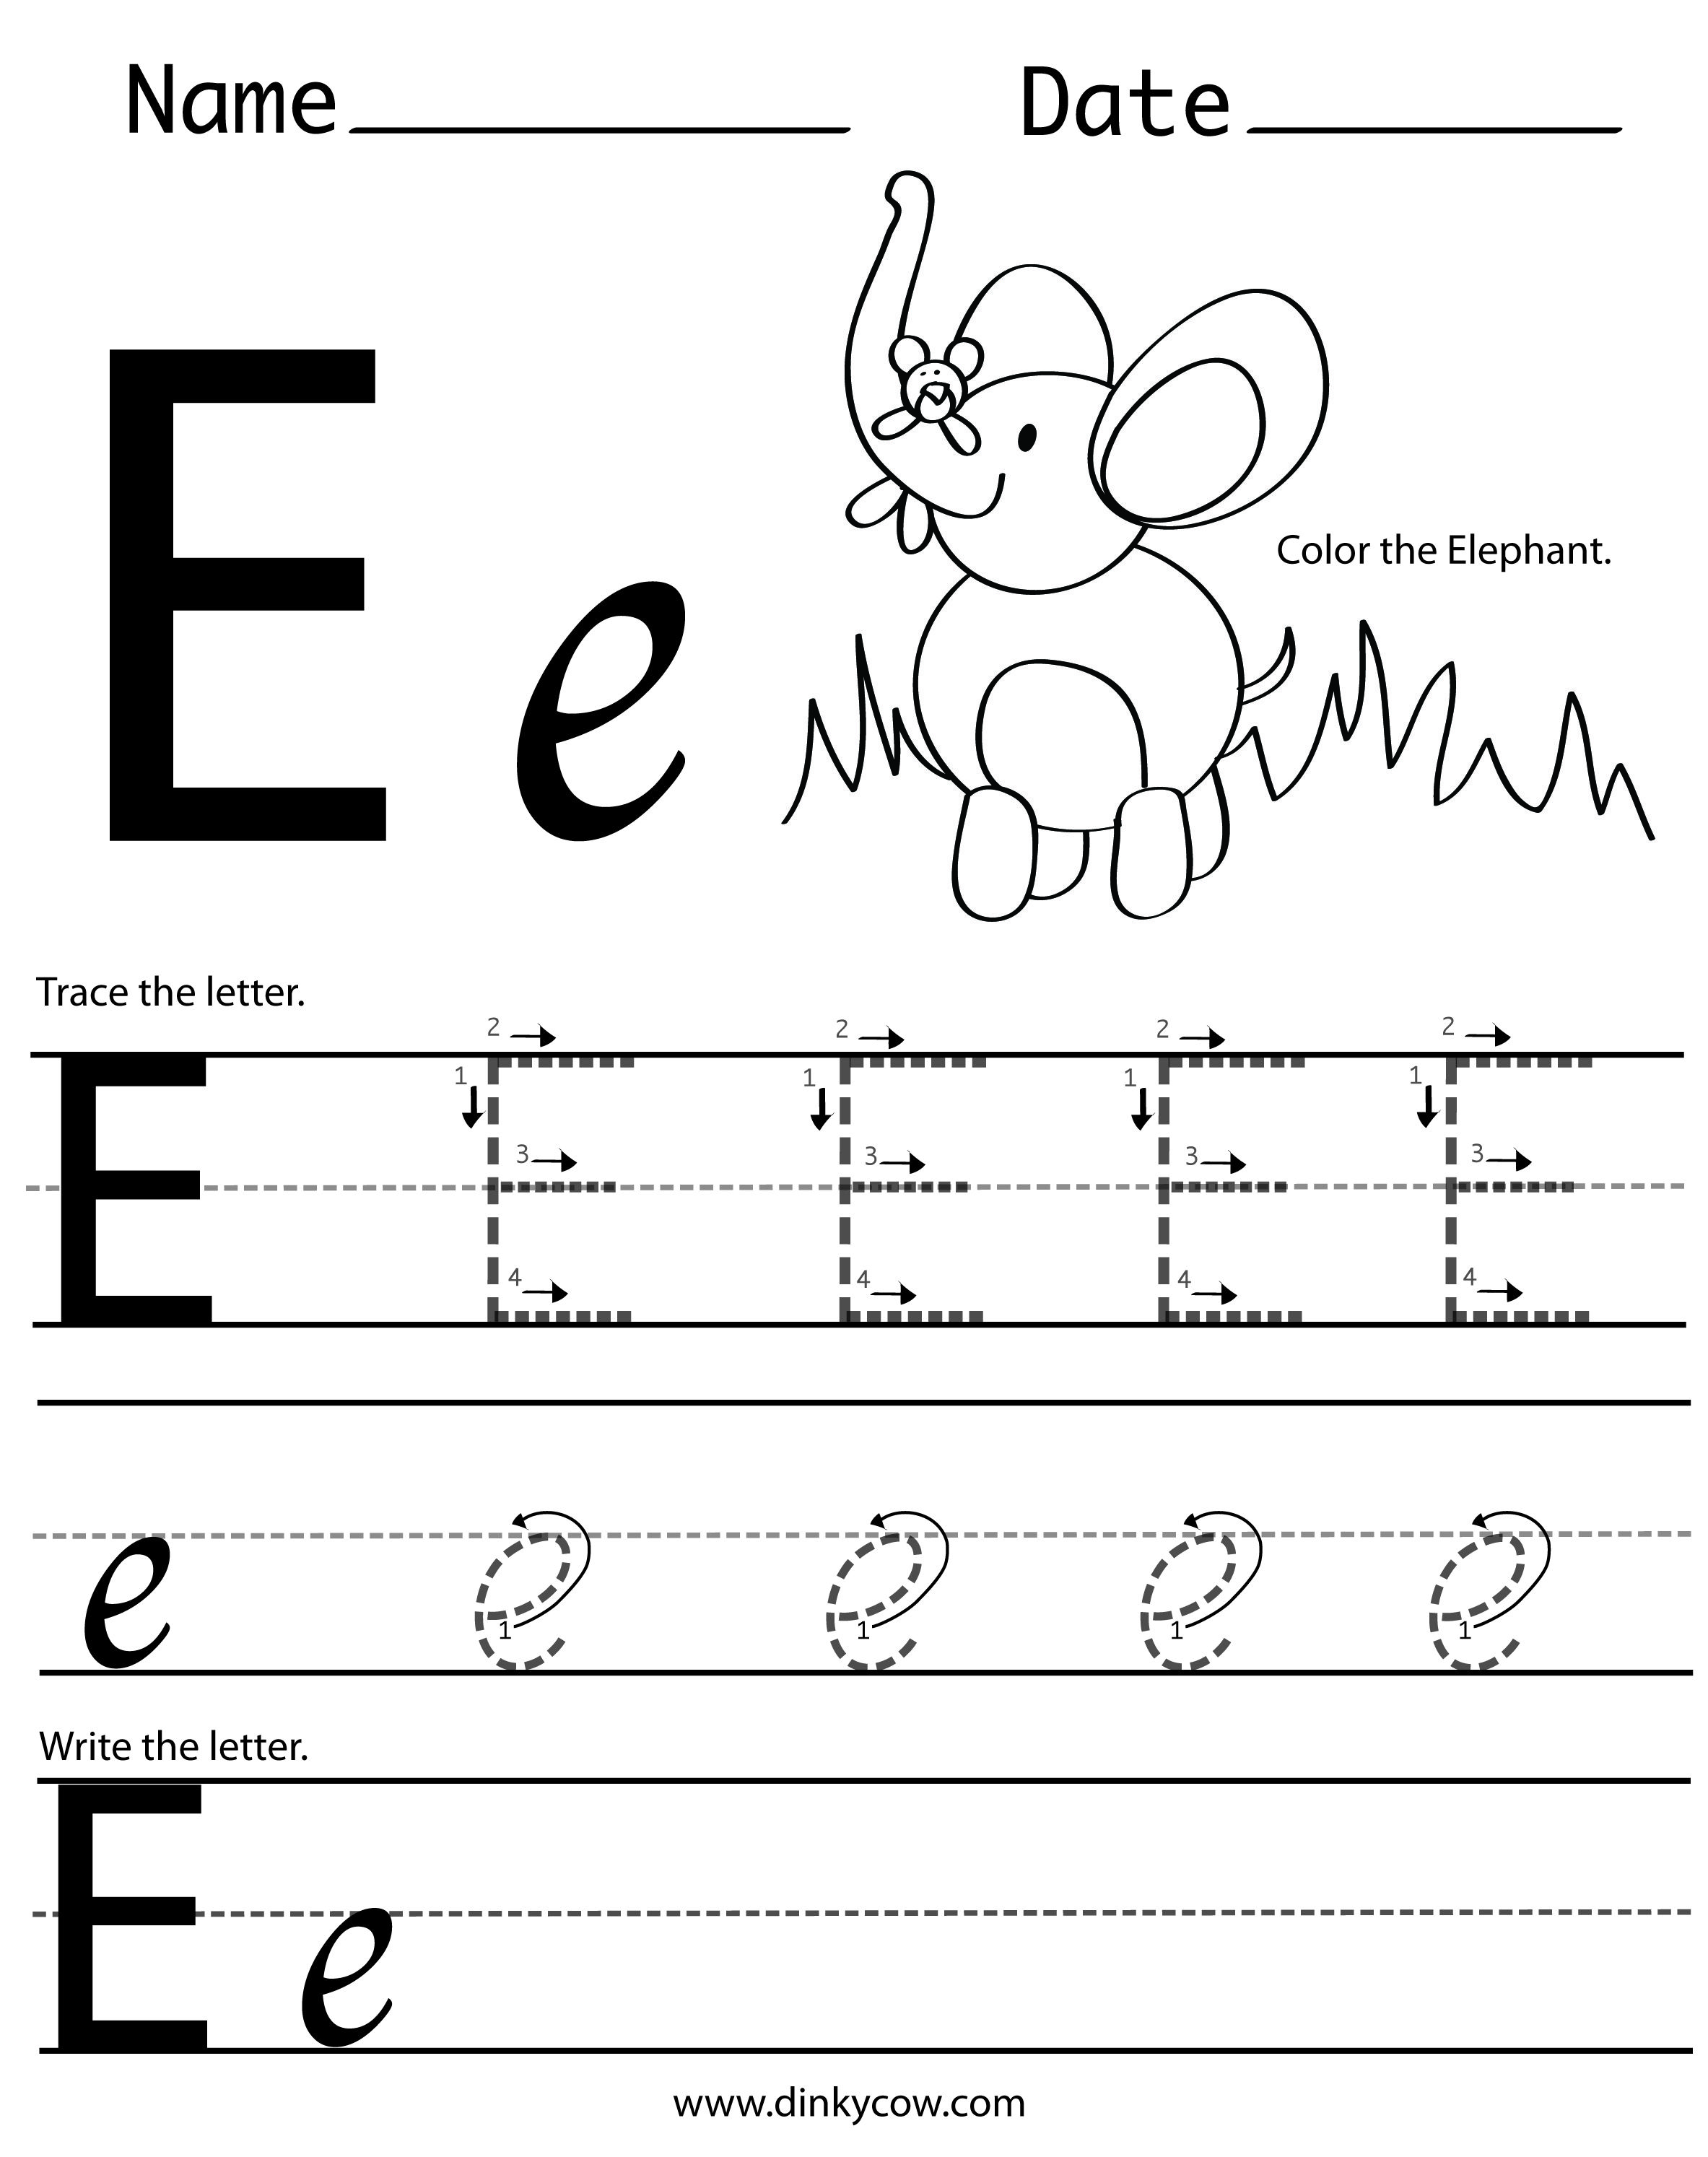 Worksheets Letter E Worksheets For Preschool Cheatslist